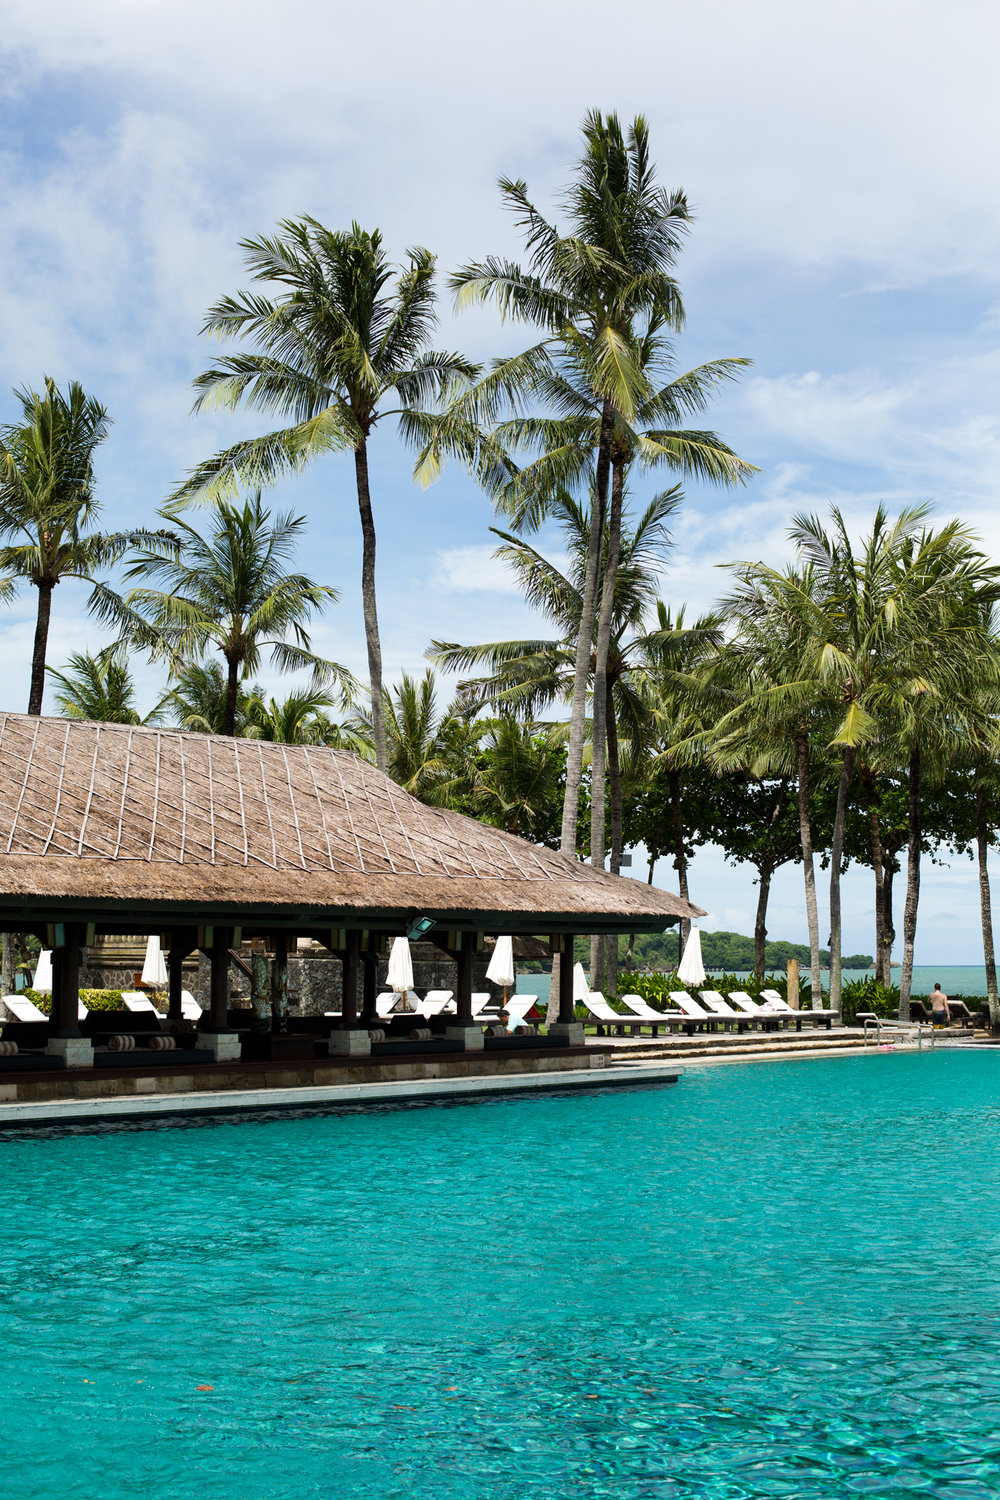 The Intercontinal hotel in Bali was perfection